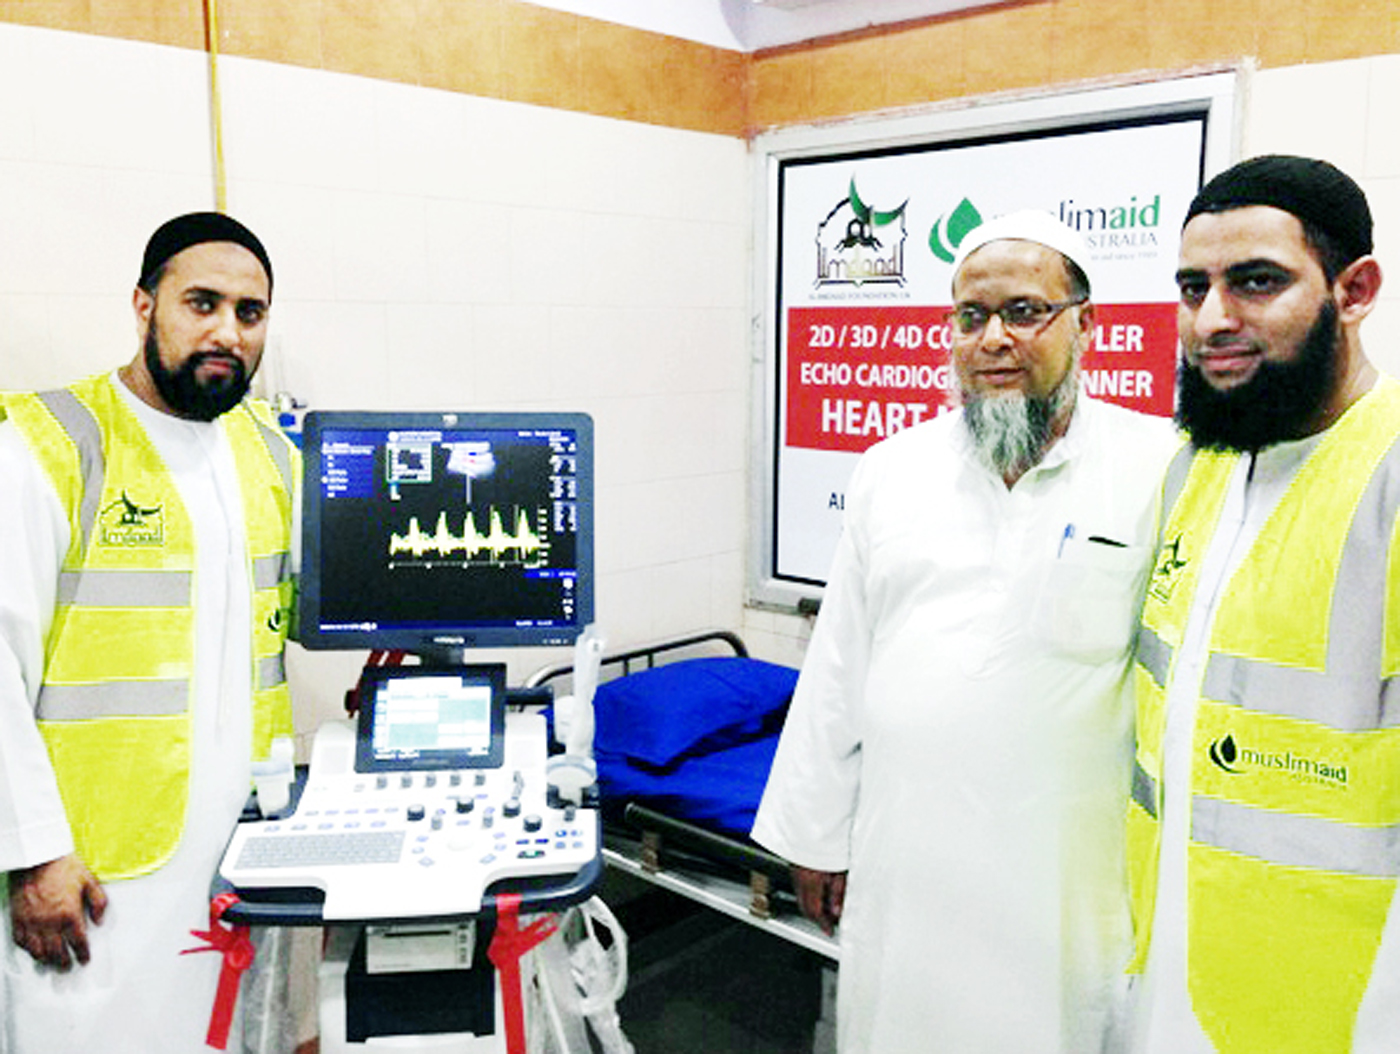 Al-Imaad Foundation representatives present the heart machine to the hospital in Gujarat